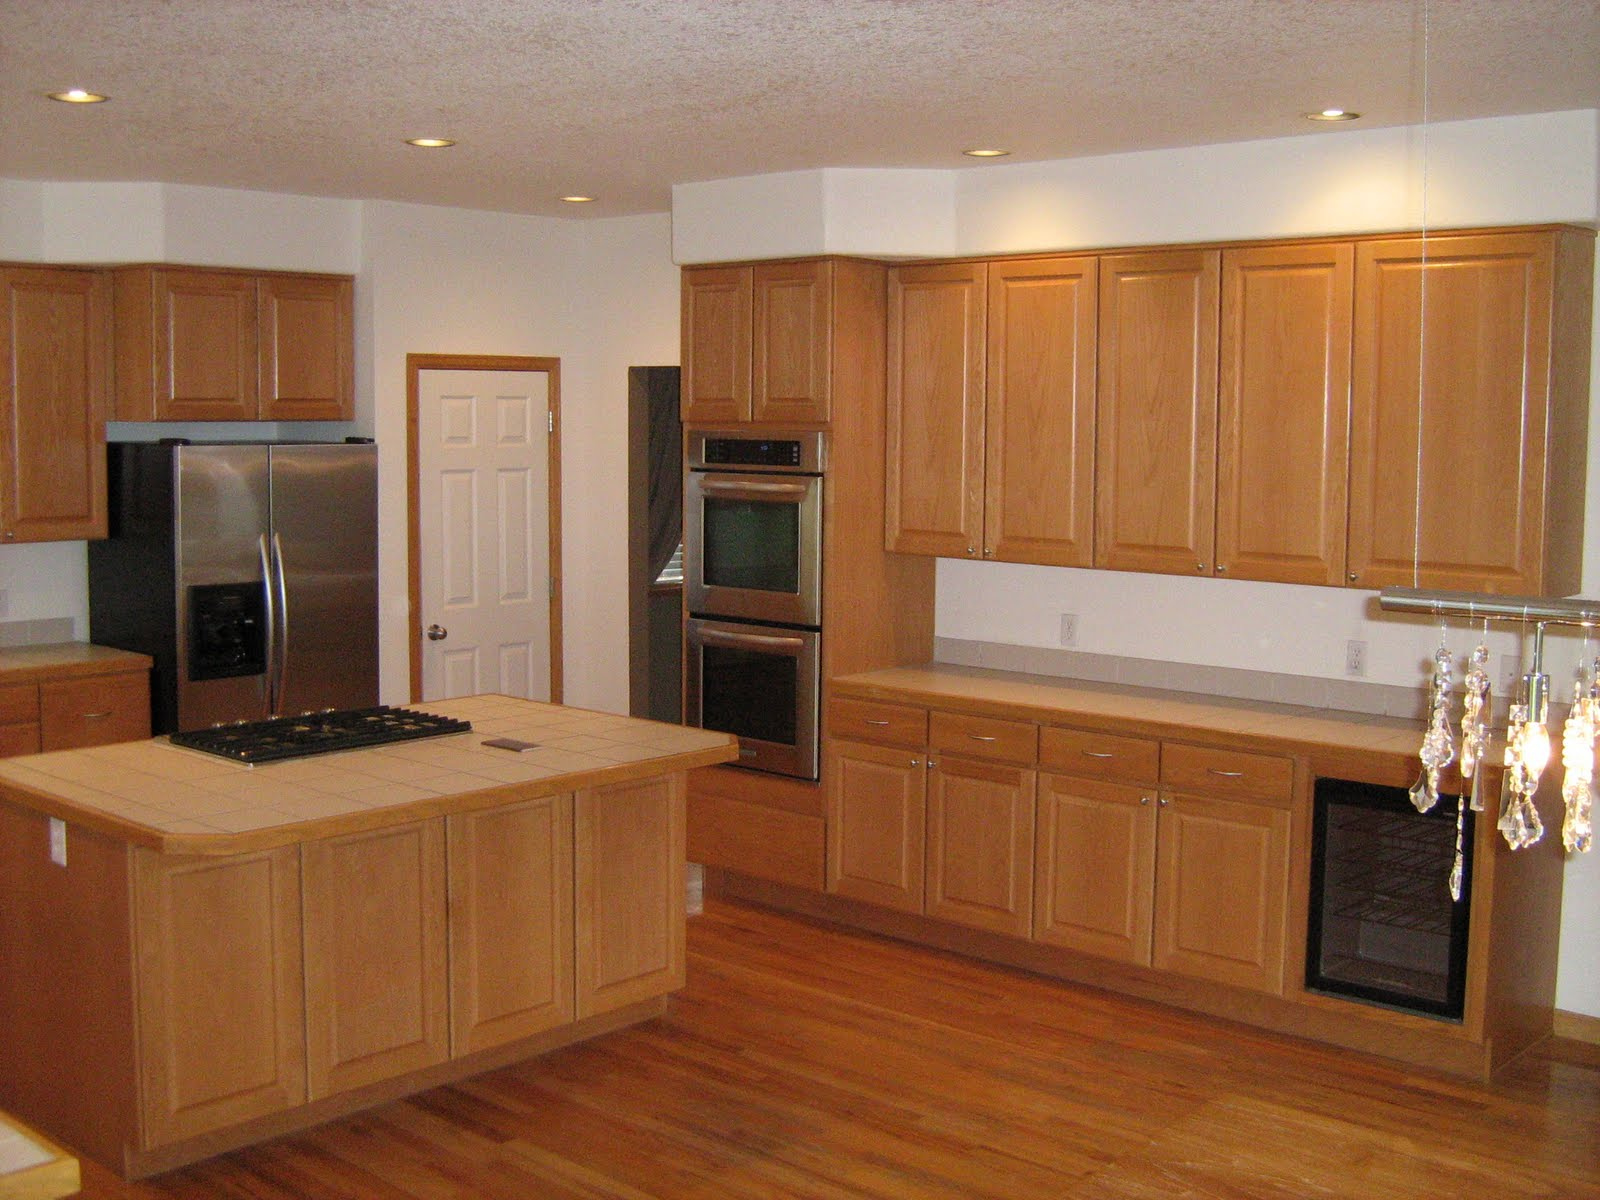 Refinish Kitchen Sink Henckels Shears Integrity Installations............ (a Division Of Front ...